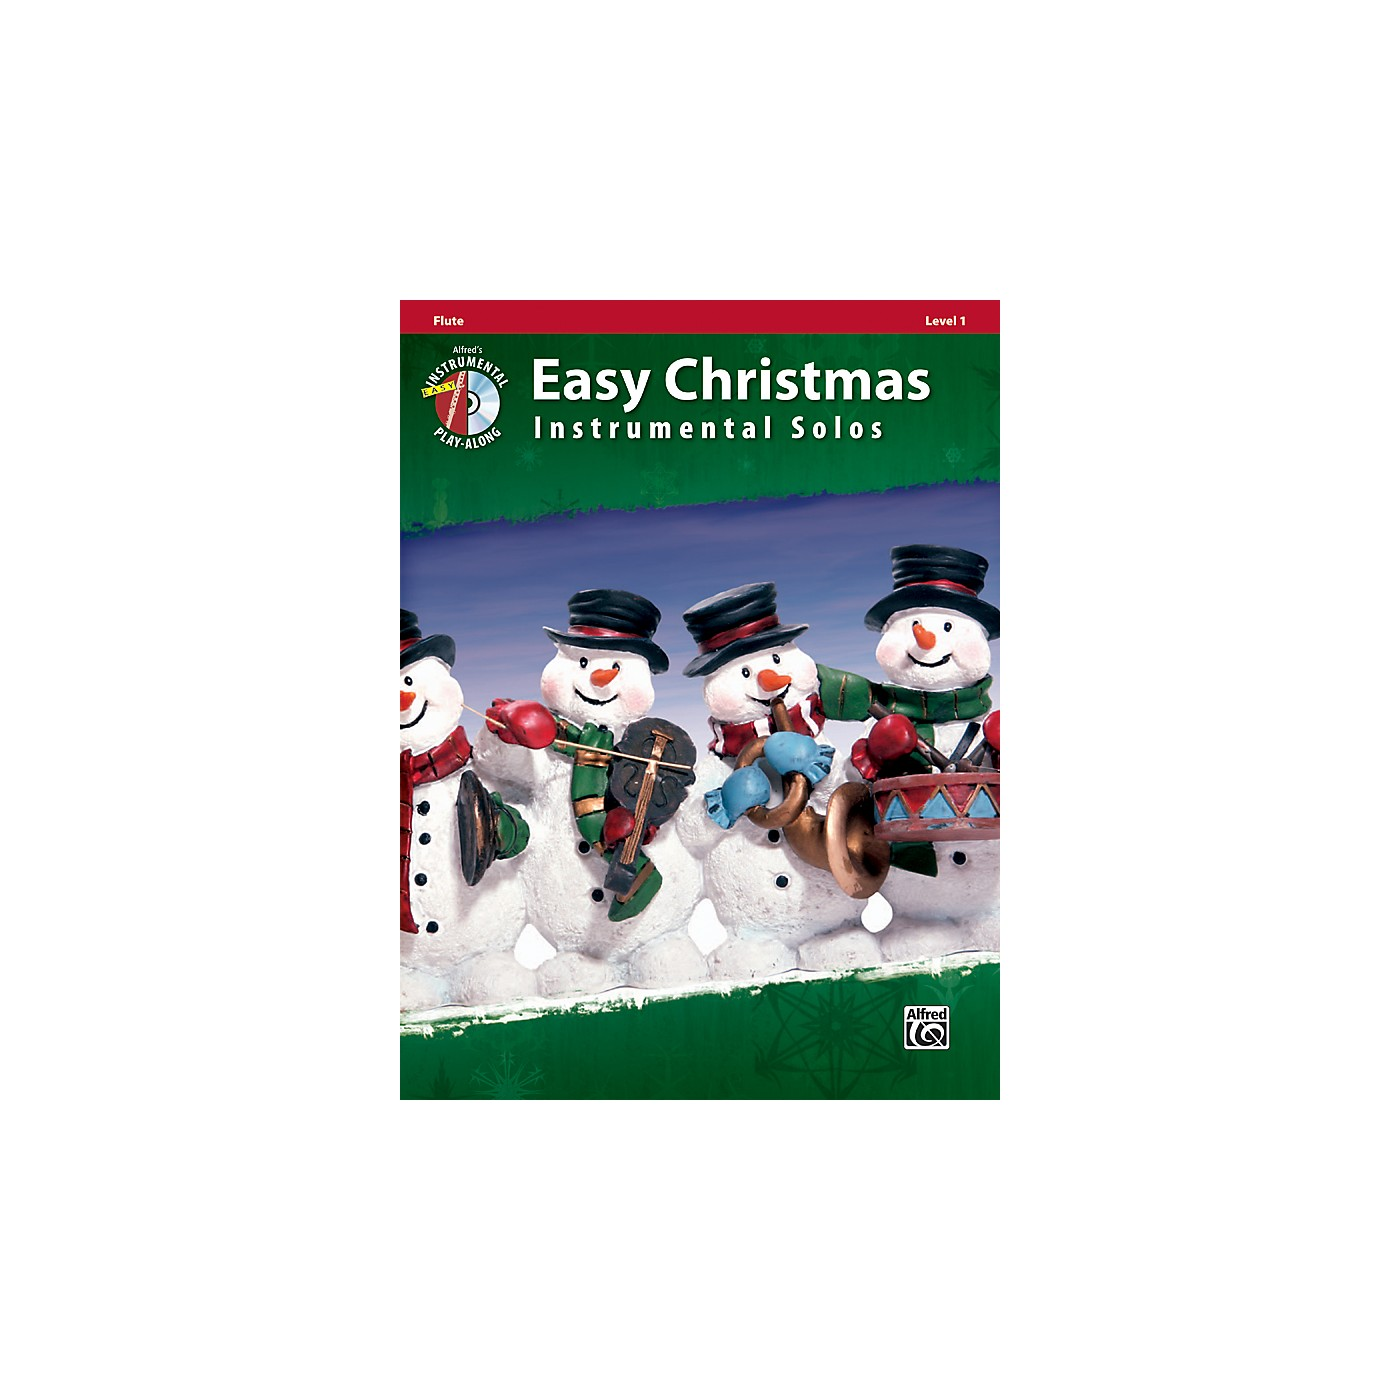 Alfred Easy Christmas Instrumental Solos Level 1 Flute Book & CD thumbnail